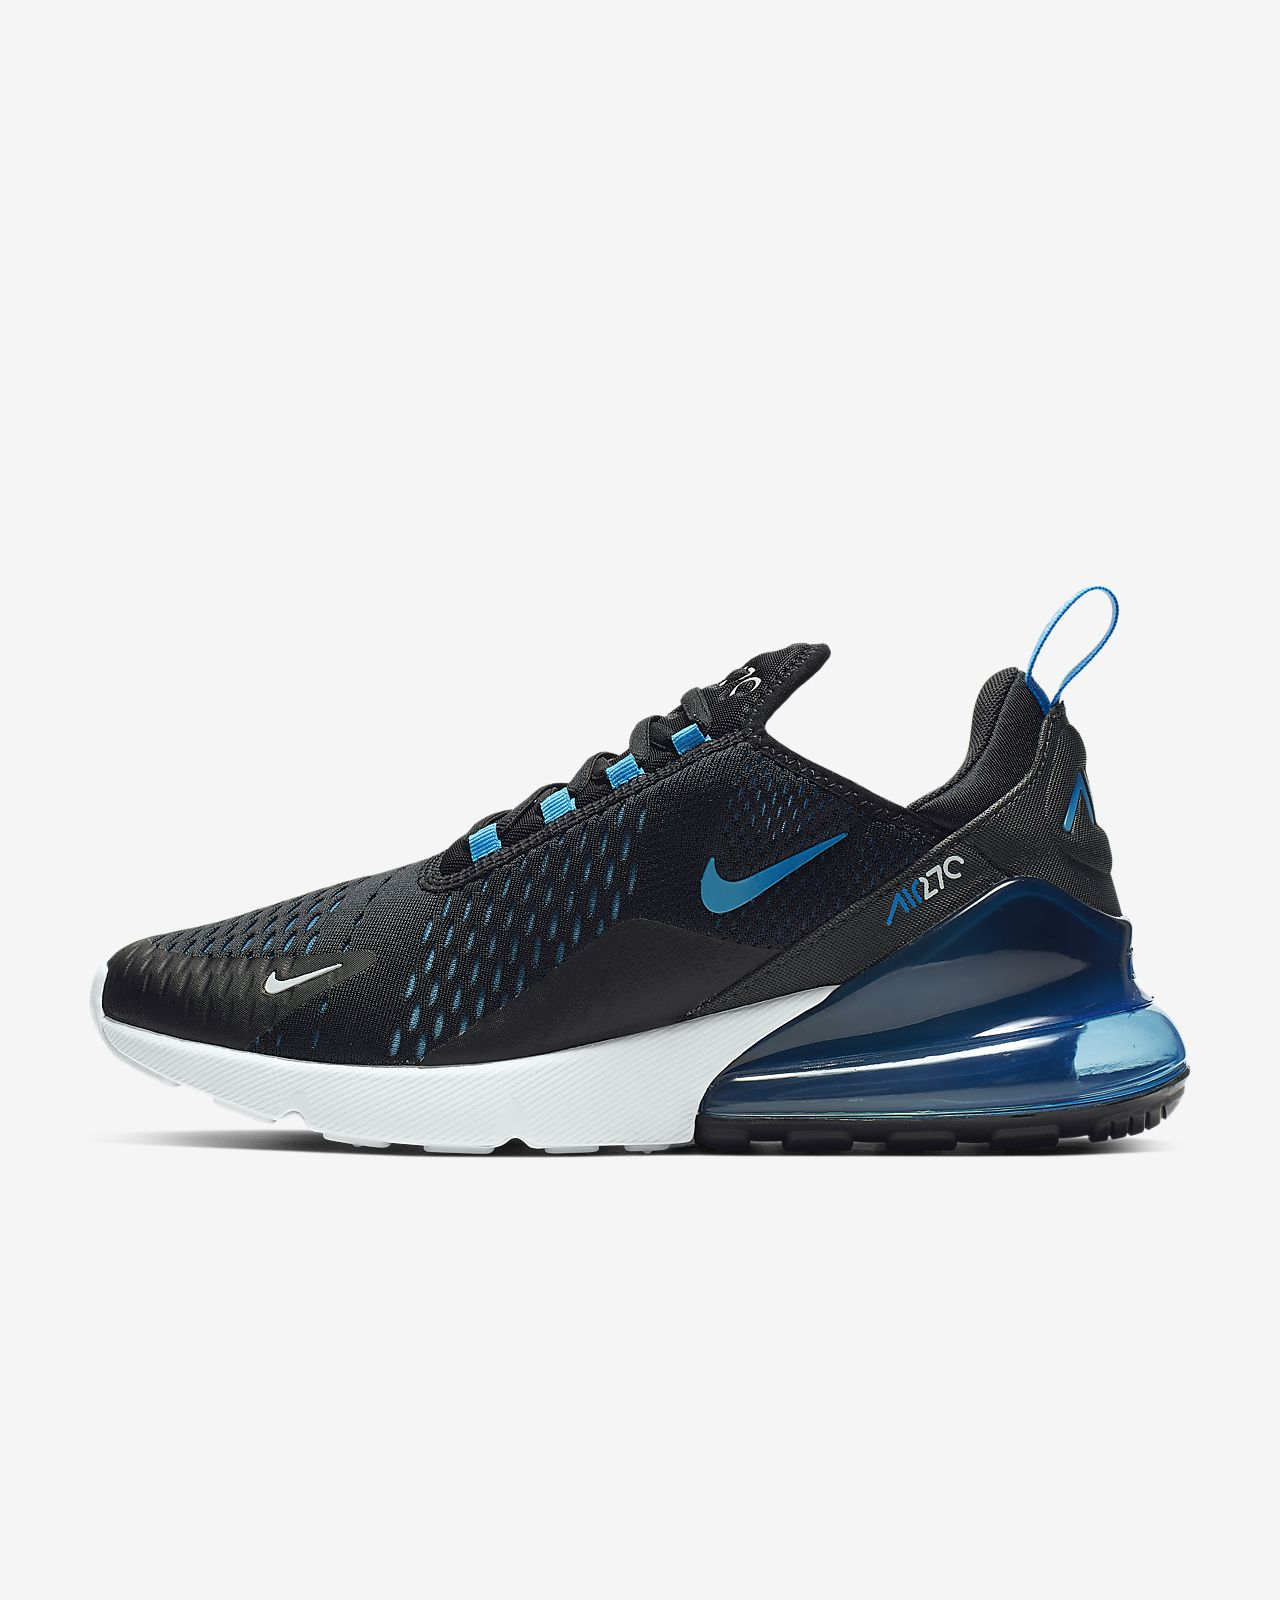 huge selection of 32da9 97ea7 ... Sko Nike Air Max 270 för män